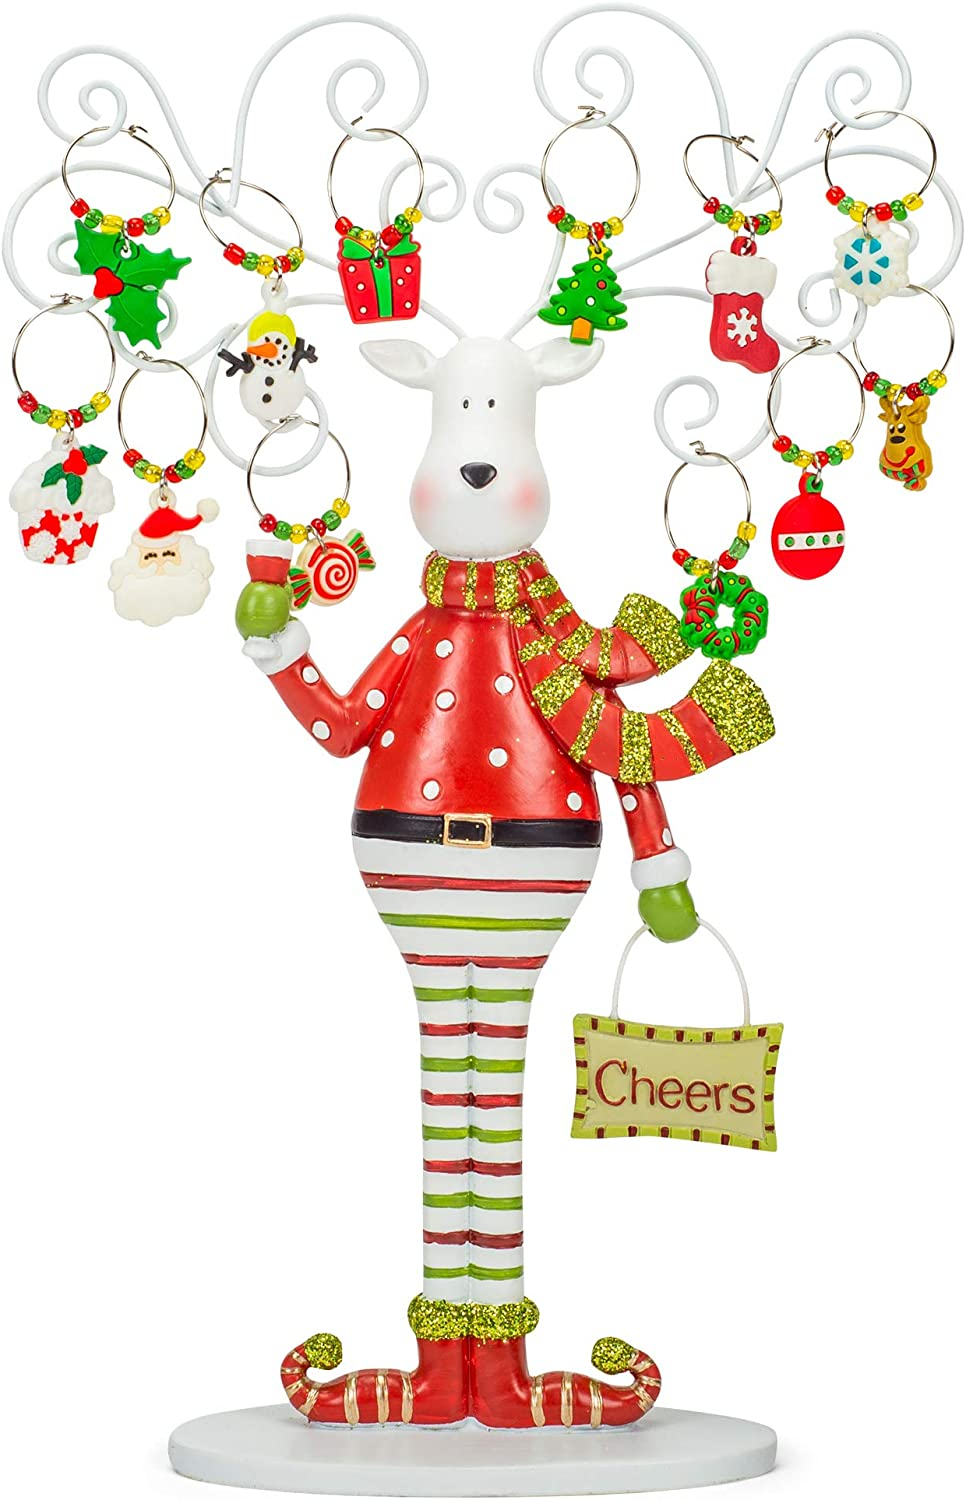 Reindeer Tree Silver Large-scale sale Tone 13 High quality x 9 Stone C Glass Marker Wine Resin